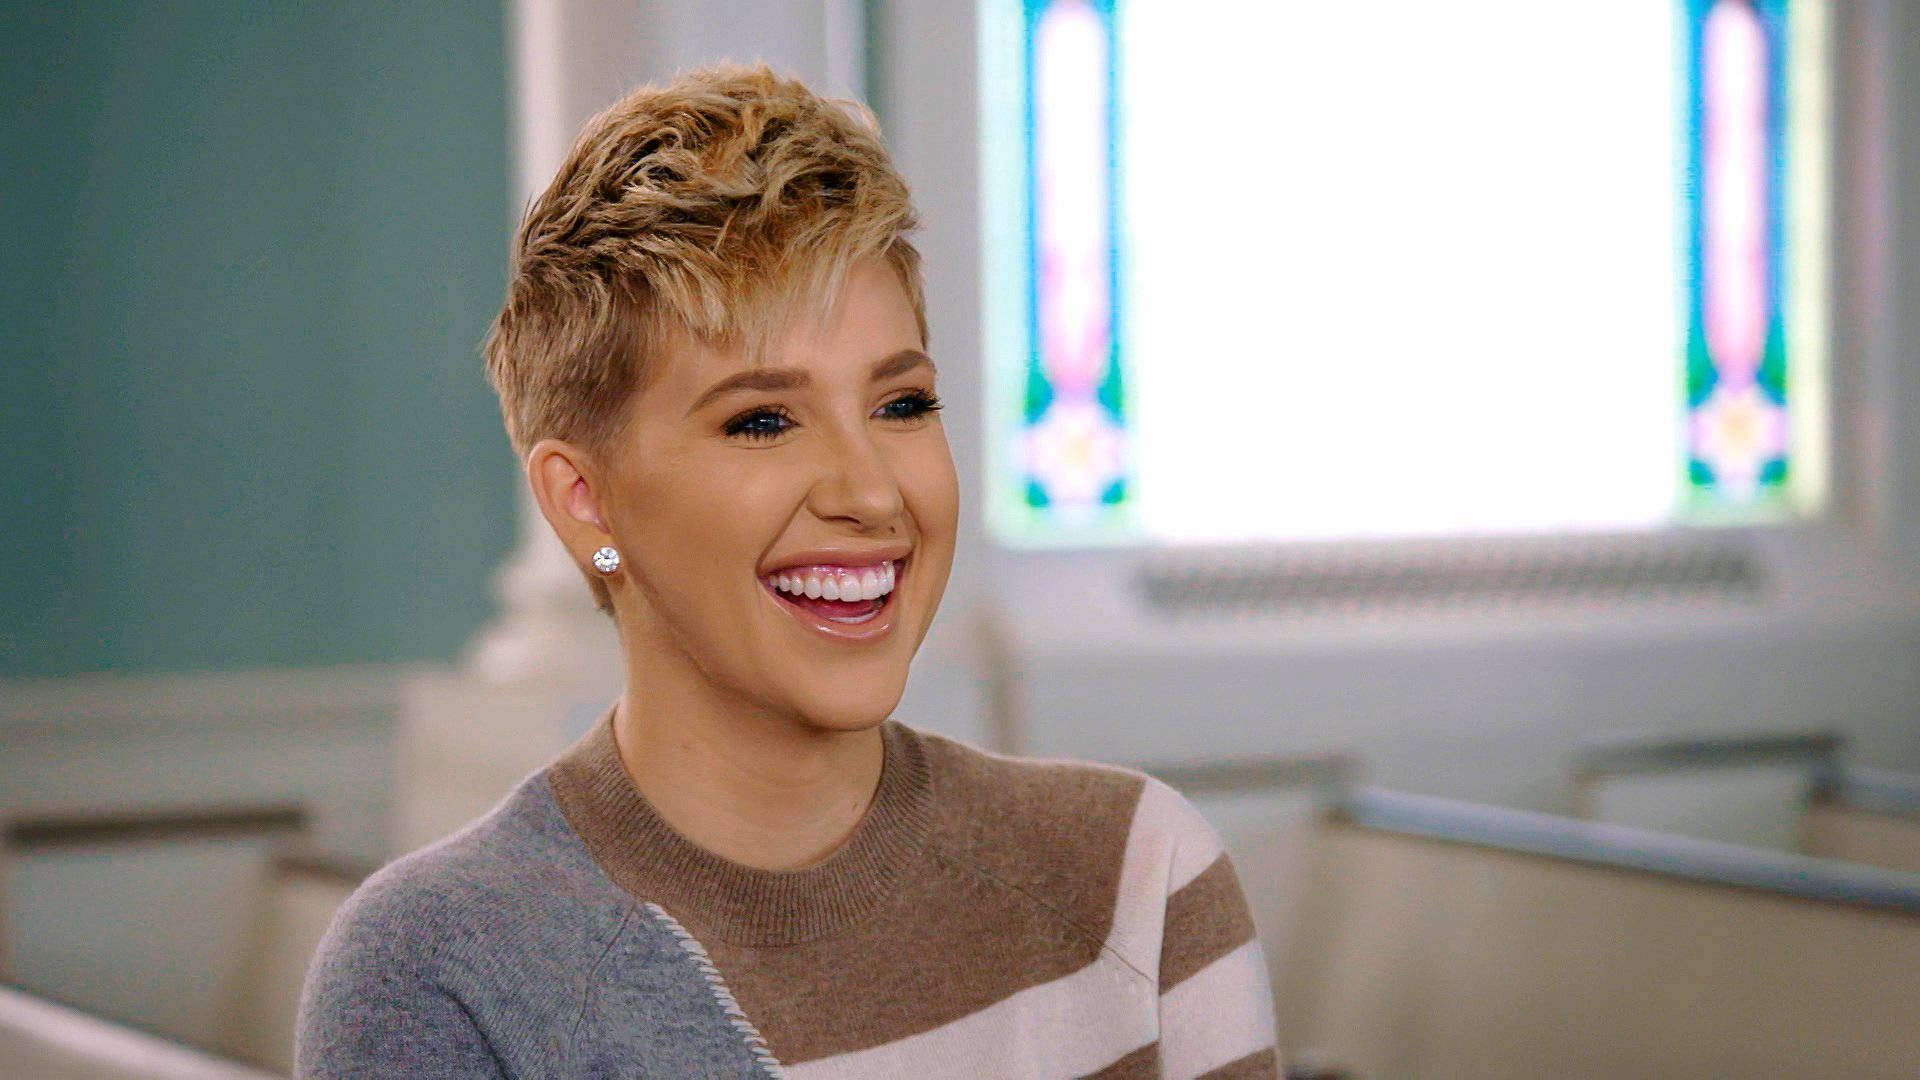 """Chrisley Knows Best -- """"Grandma Theft Auto"""" Episode 801 -- Pictured in this screengrab: Savannah Chrisley 